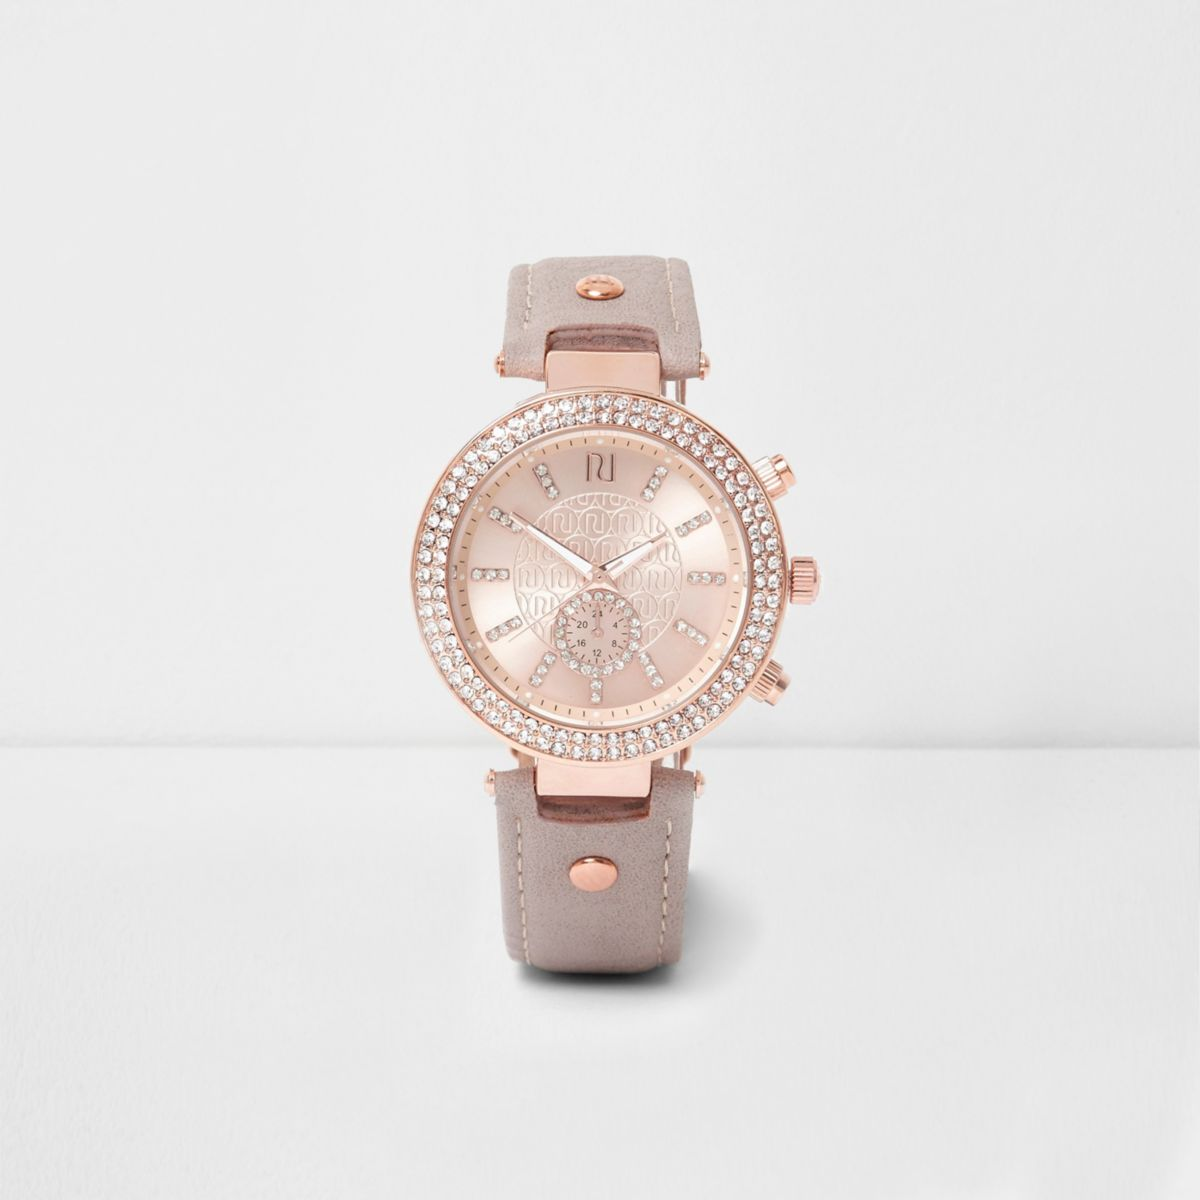 Plus grey and rose gold tone diamante watch